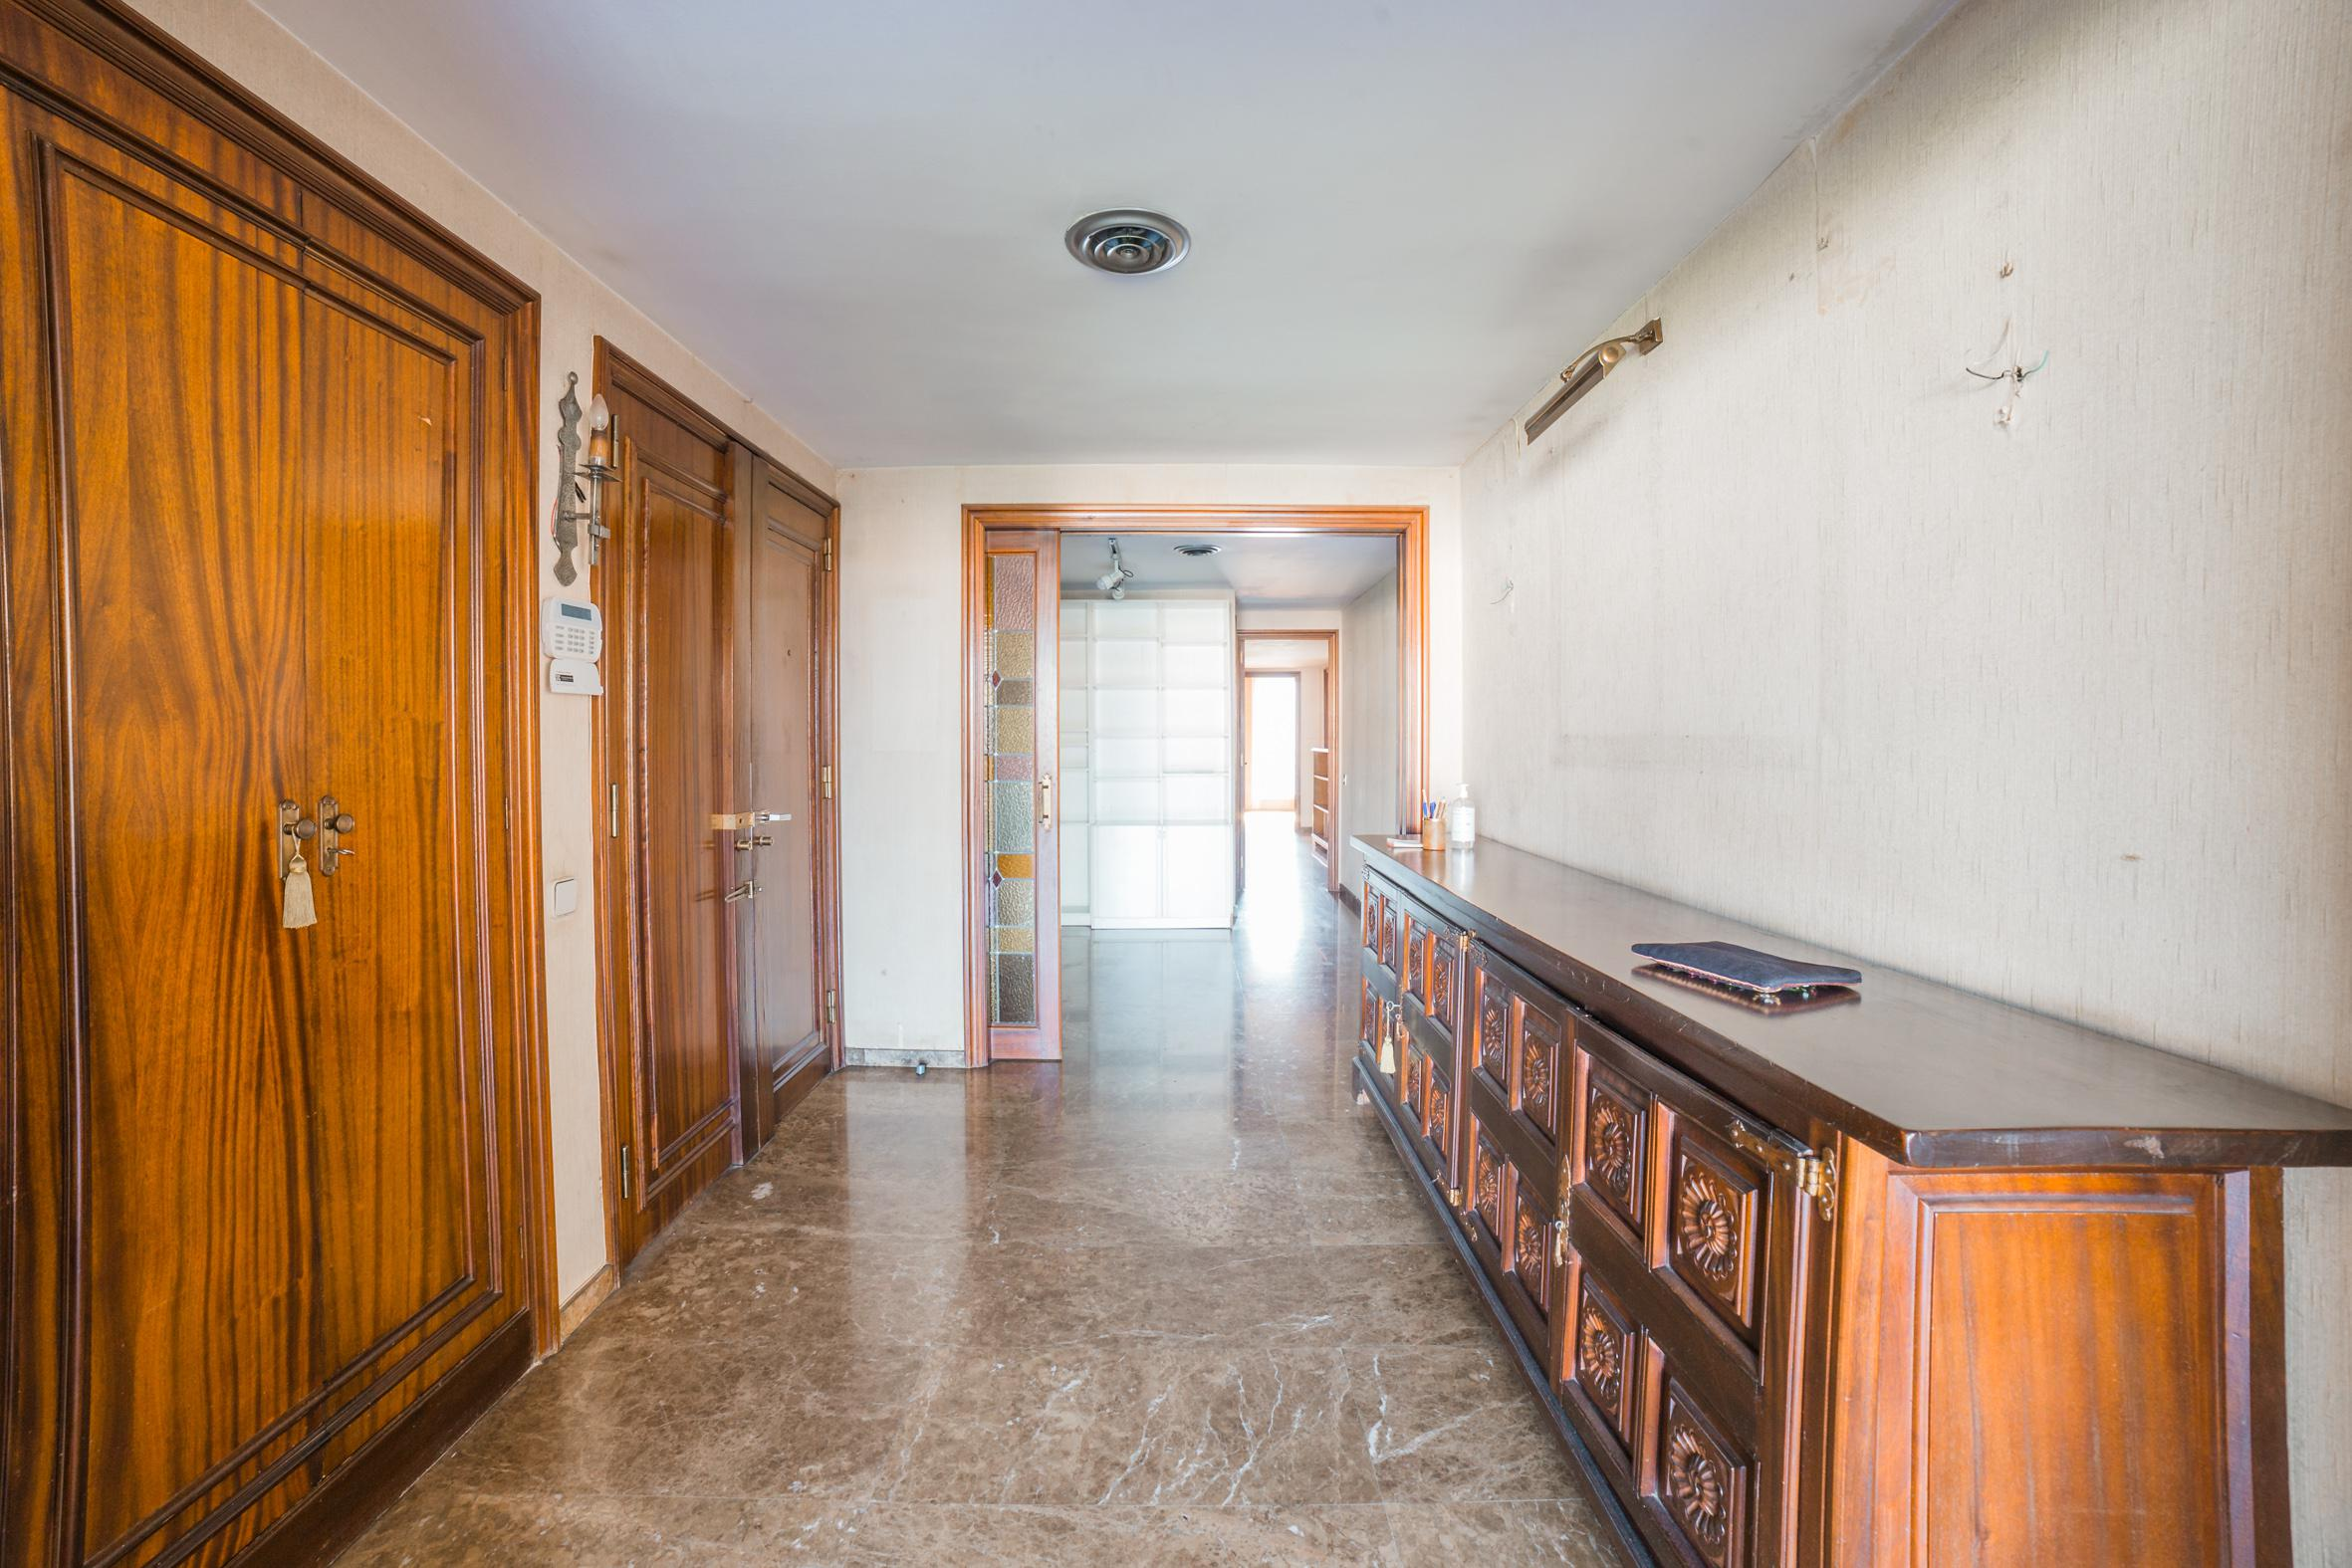 248988 Flat for sale in Les Corts, Les Corts 12